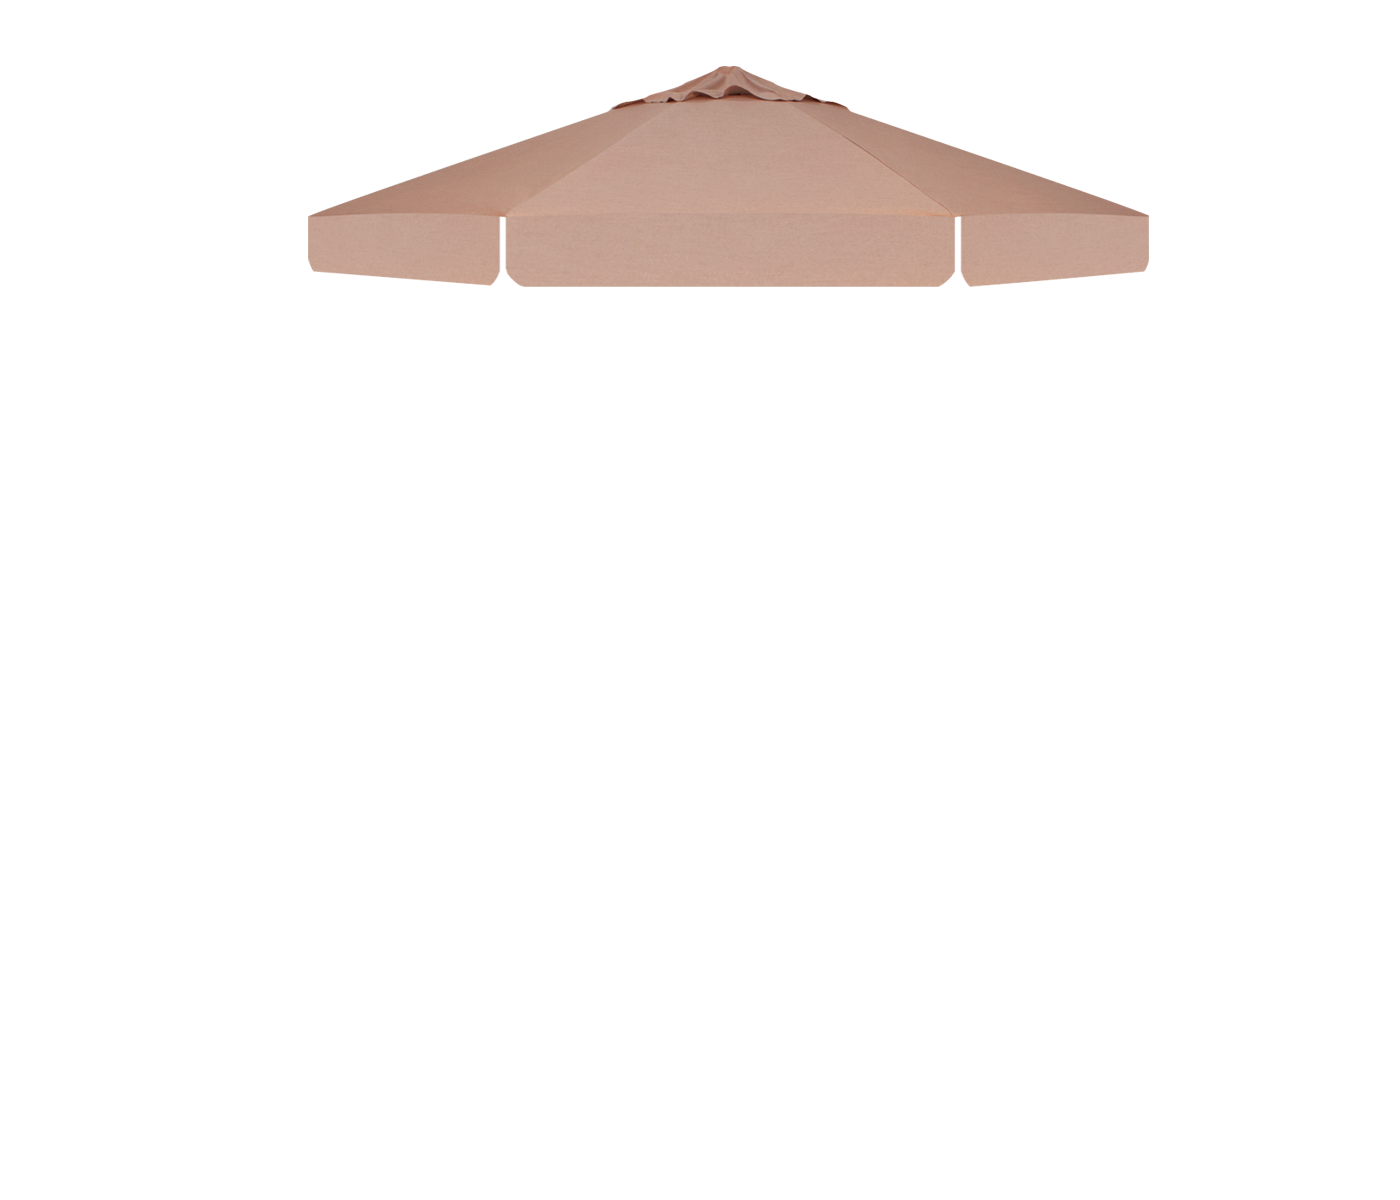 40431-Valance-side.png